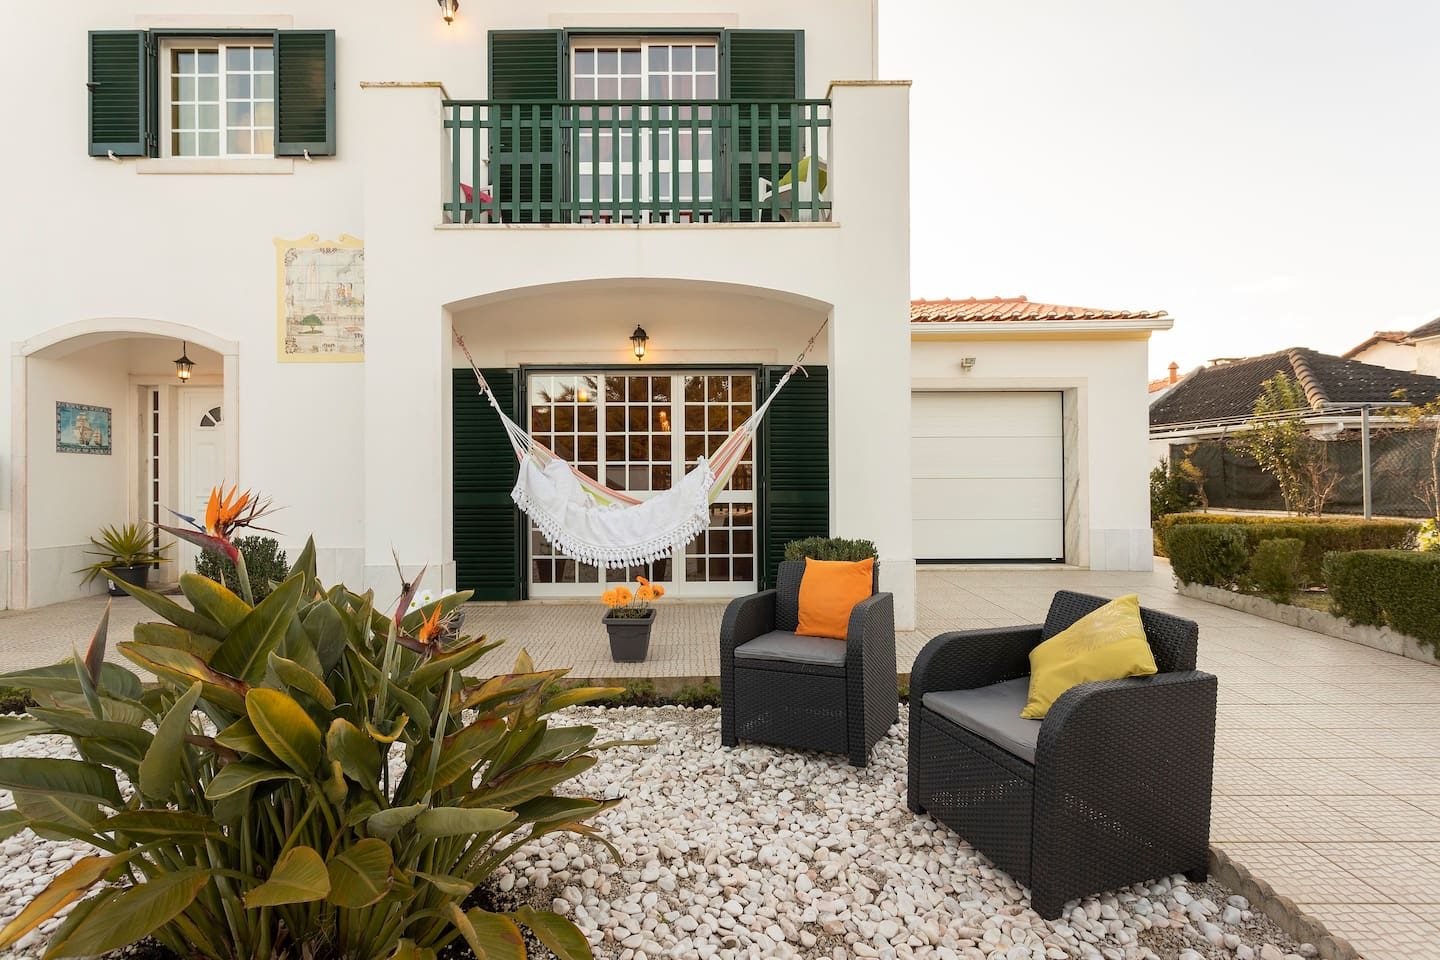 The main entrance of Beach House. Welcome and have nice and relaxed holidays!